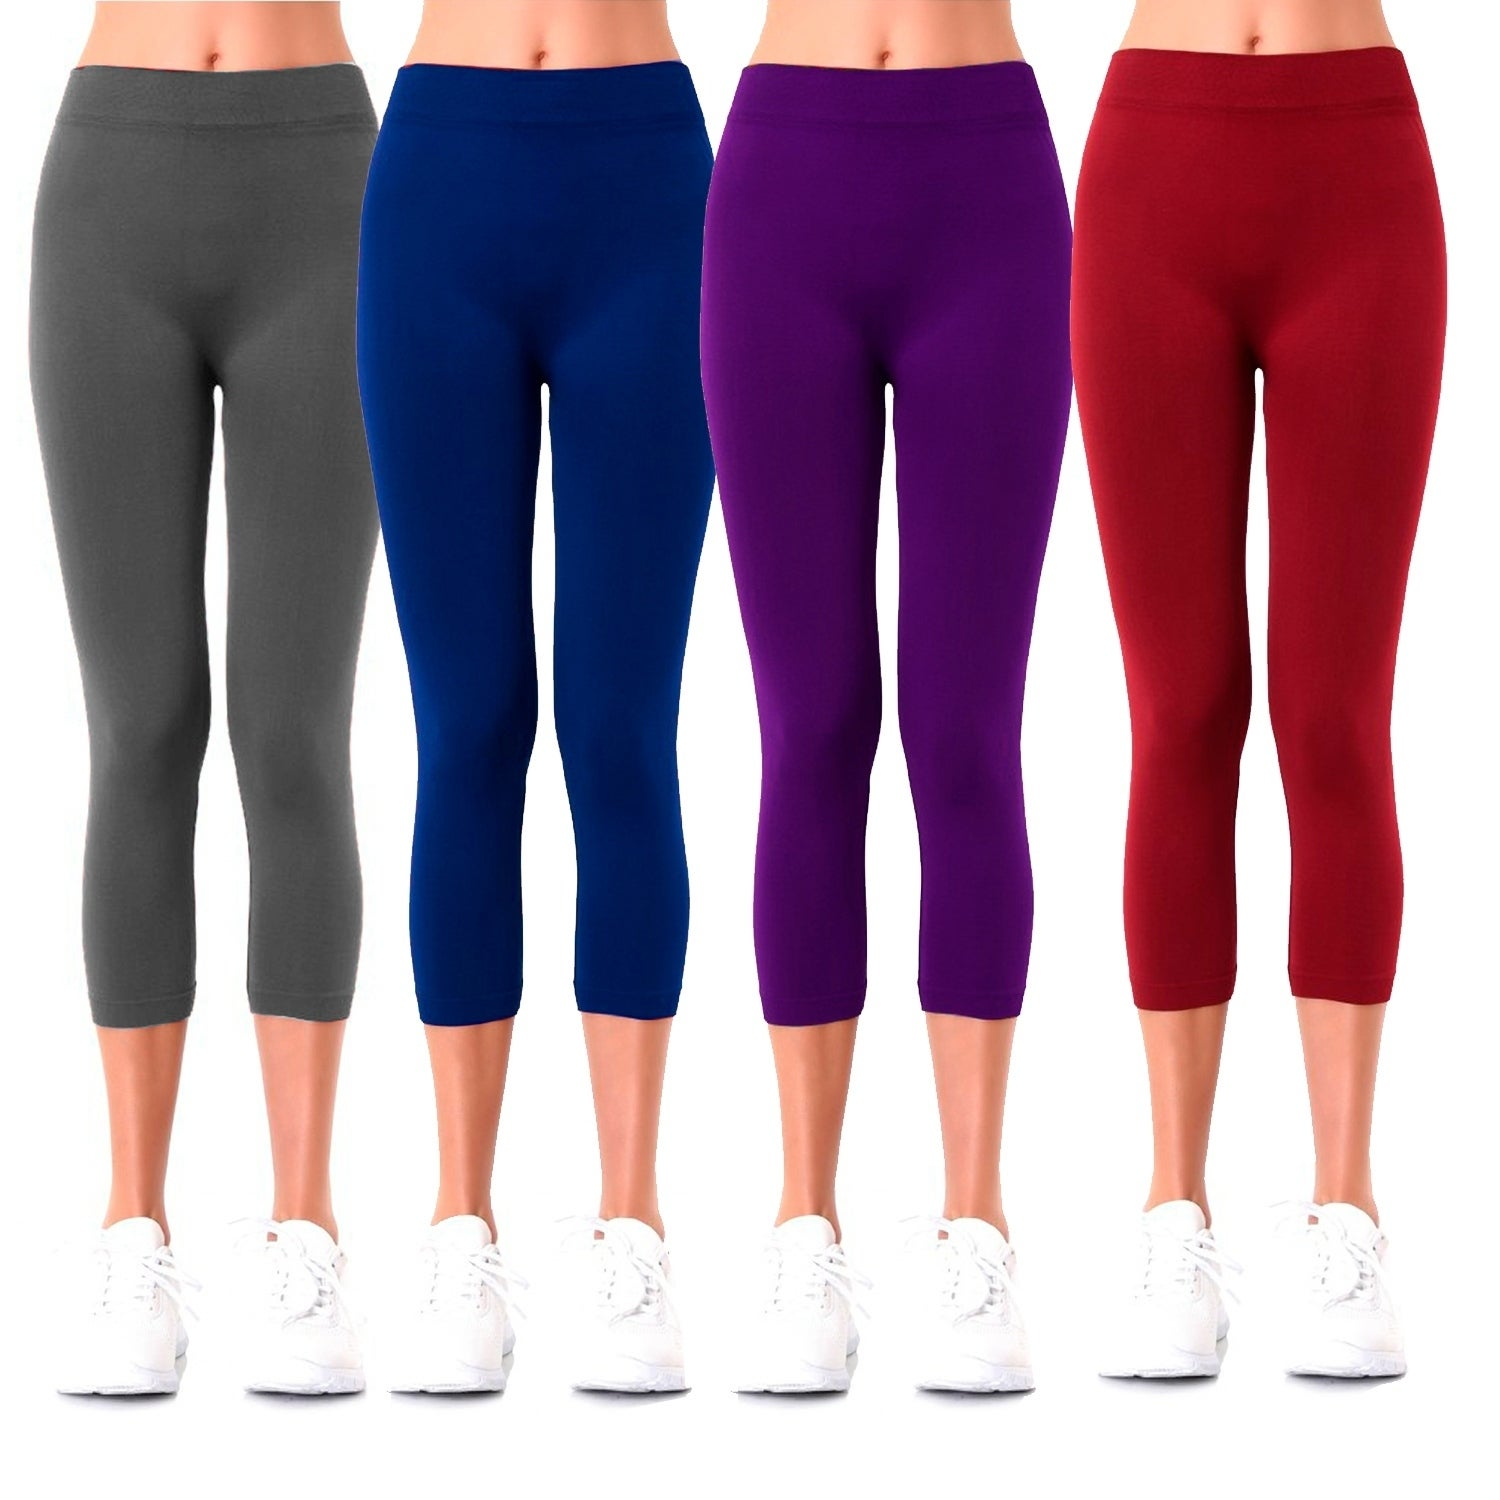 ba3ae05117a Buy Size One Size Fits Most Leggings Online at Overstock